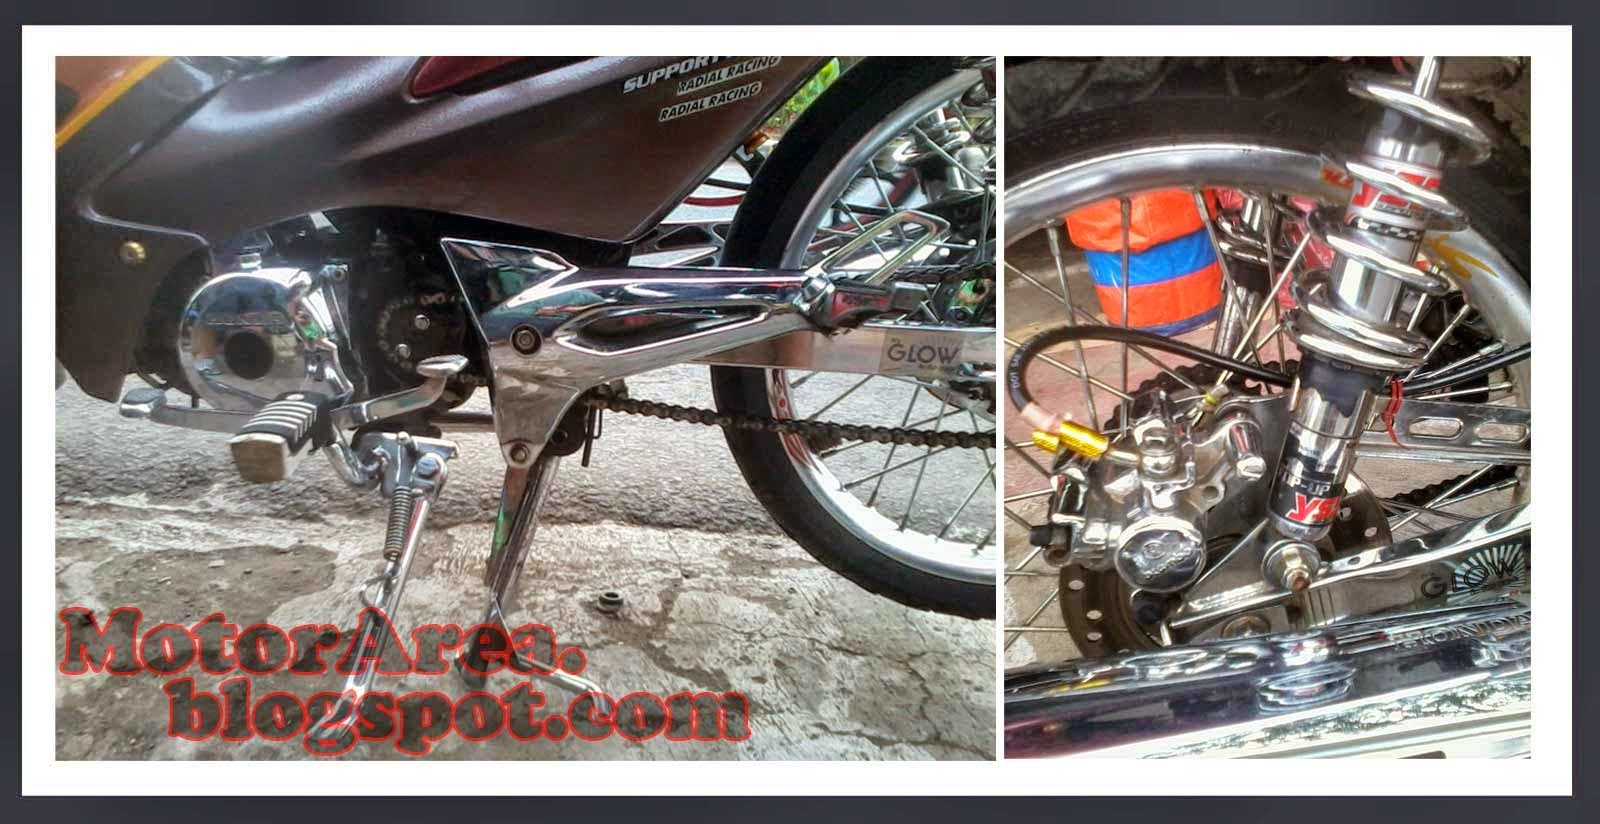 Kumpulan Modifikasi Road Race Motor Supra Fit Terlengkap Cabang